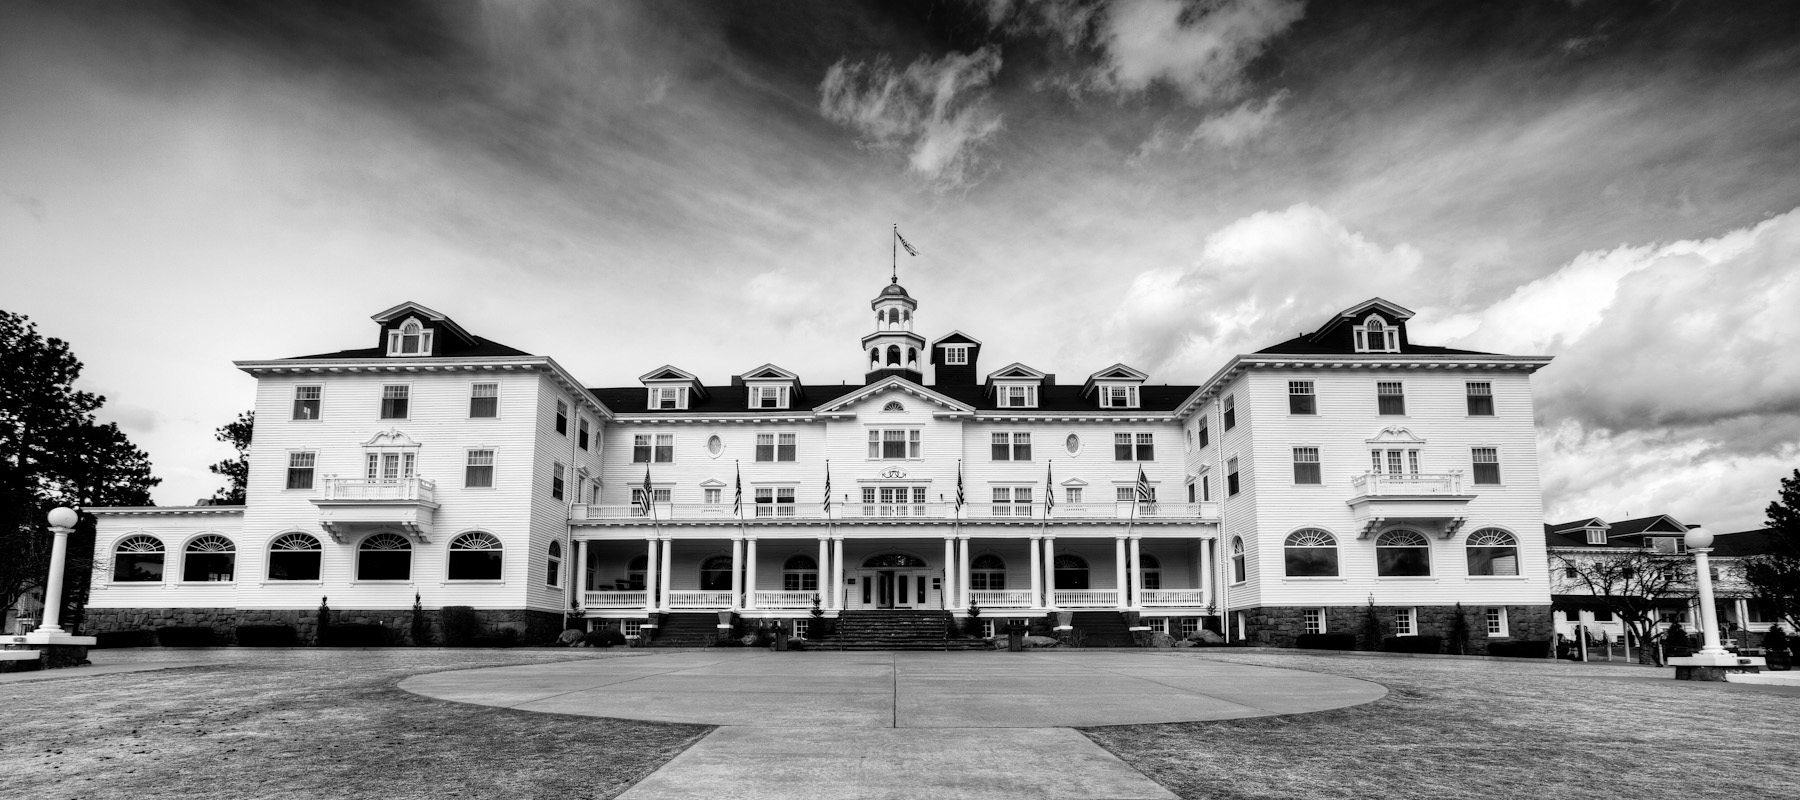 The Stanley Hotel Hotel Plus Hante Des Usa Shining Stephenking